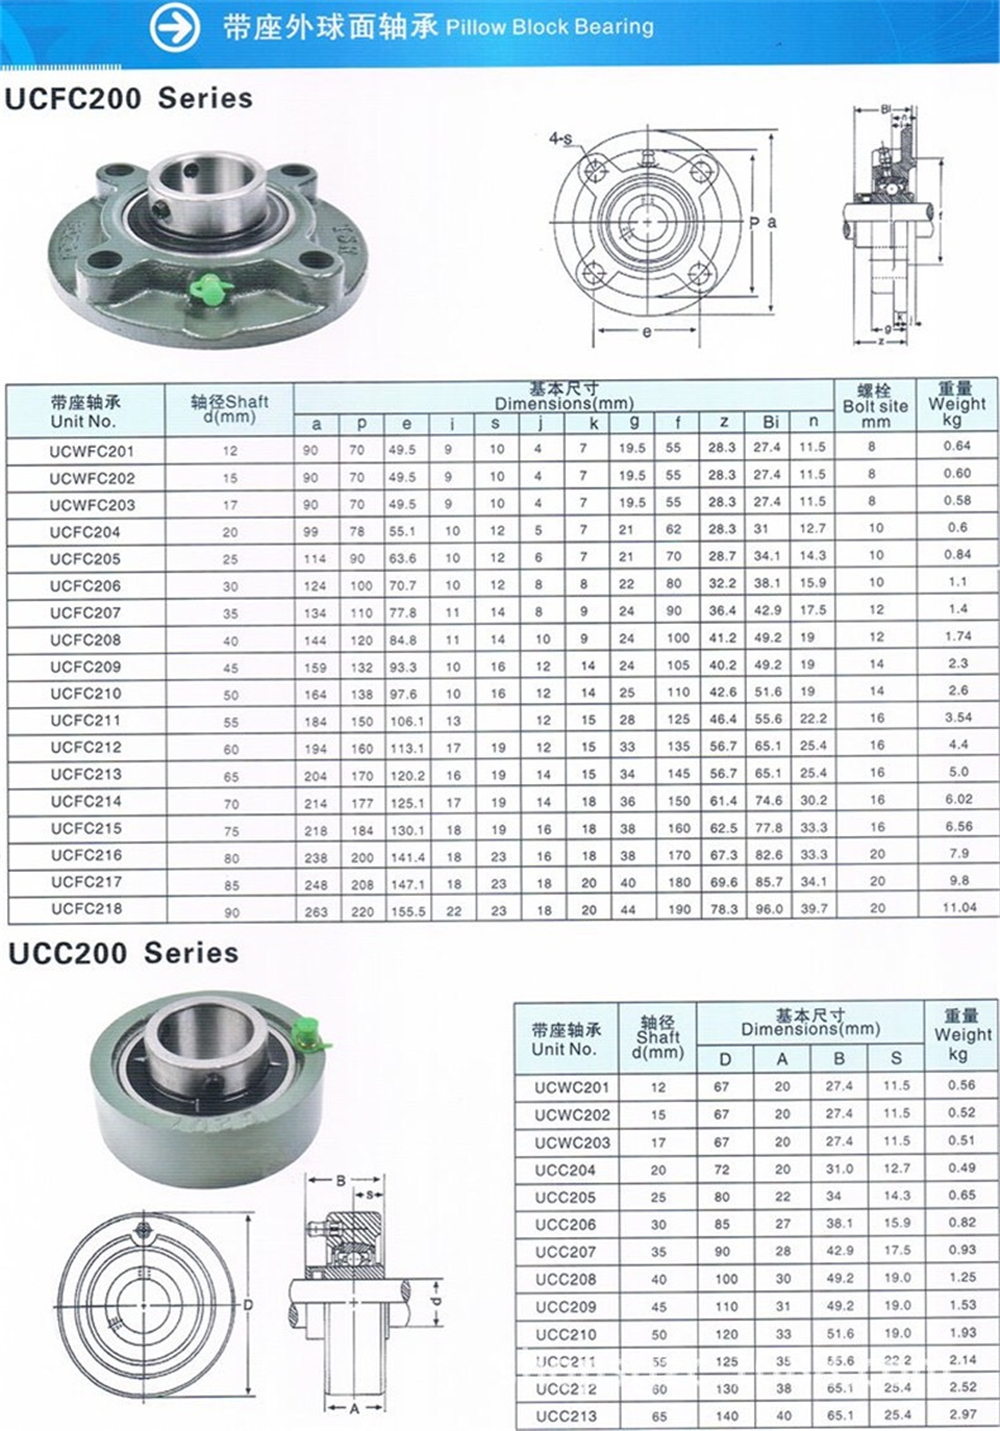 Flanged Housing Units and Plummer Block Bearings UCFCX08 UCFCX08-108/109